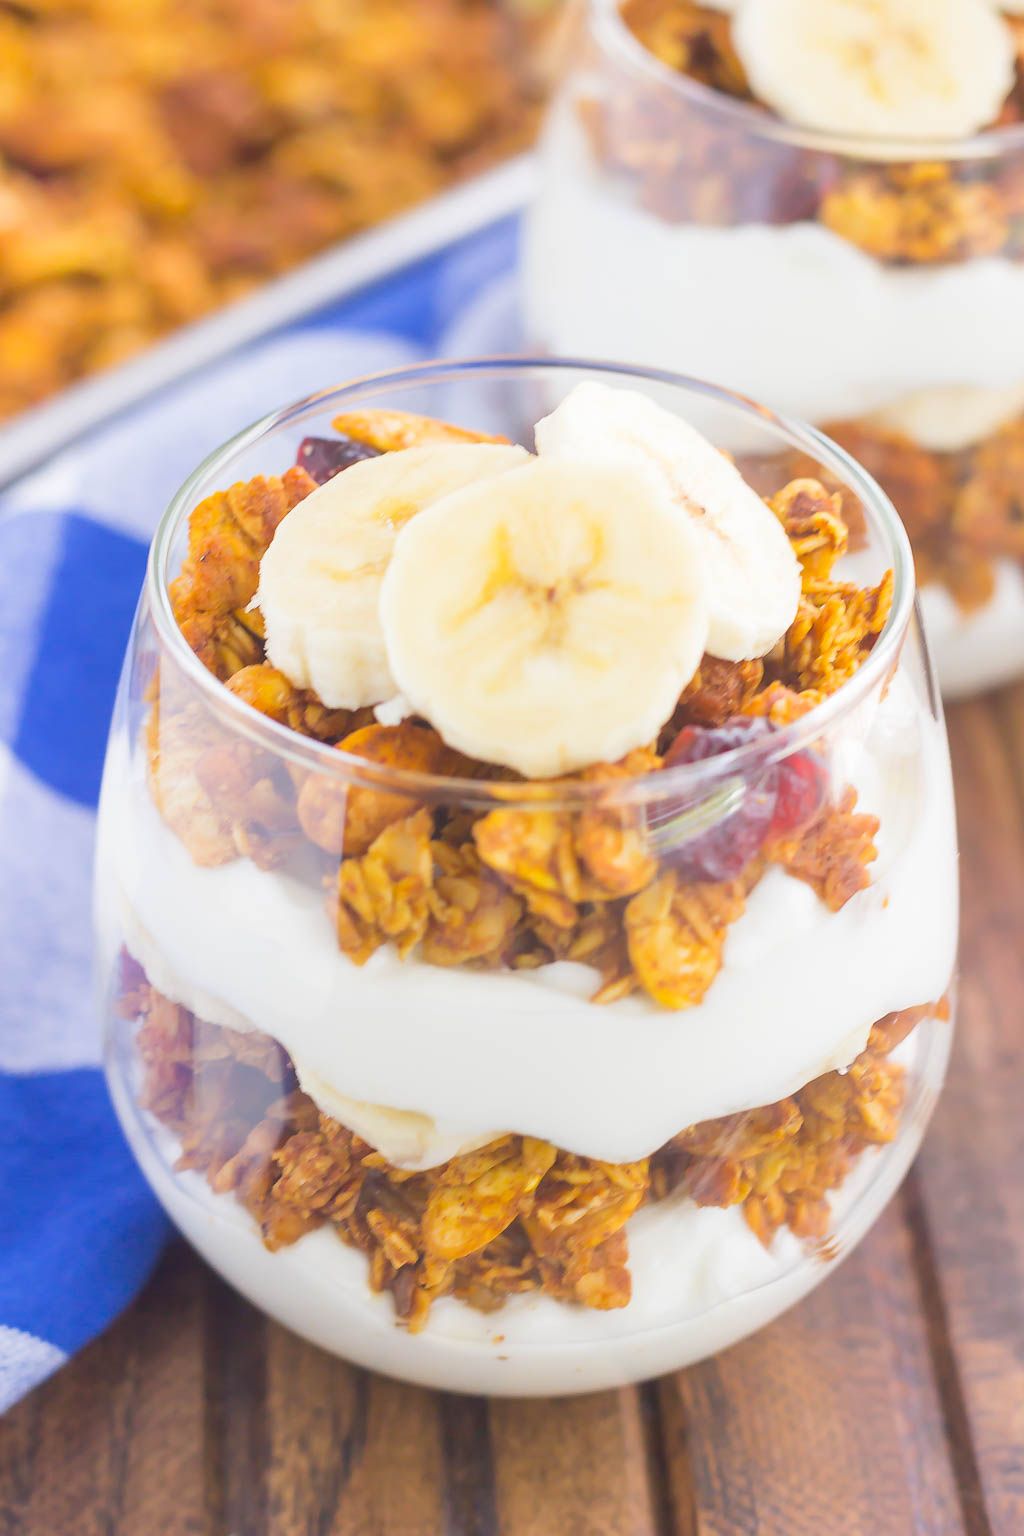 yogurt and pumpkin granola and banana slices layered in a glass